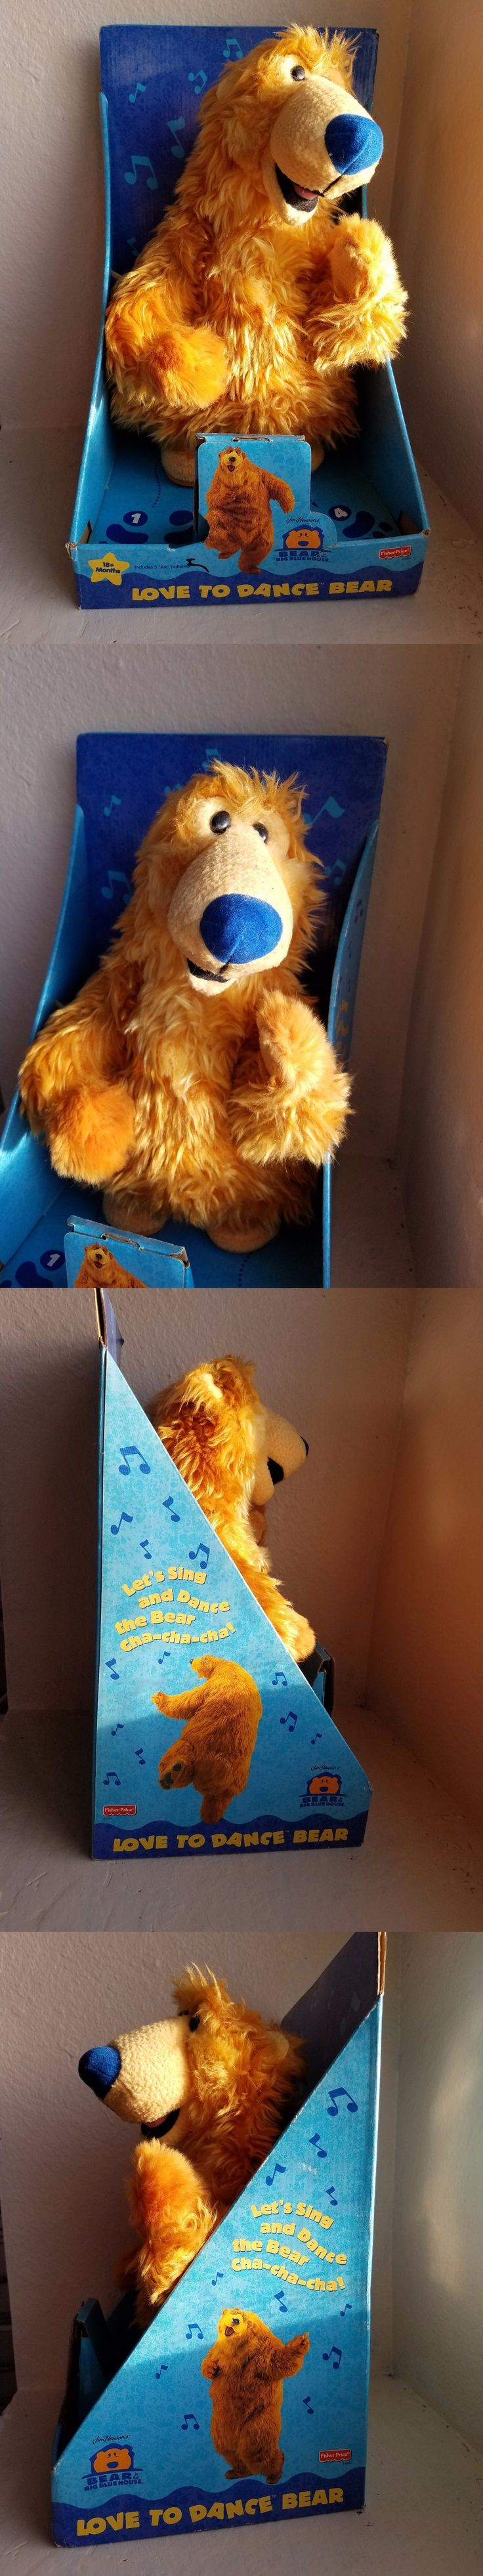 69 best bear in the big blue house 20901 images on pinterest